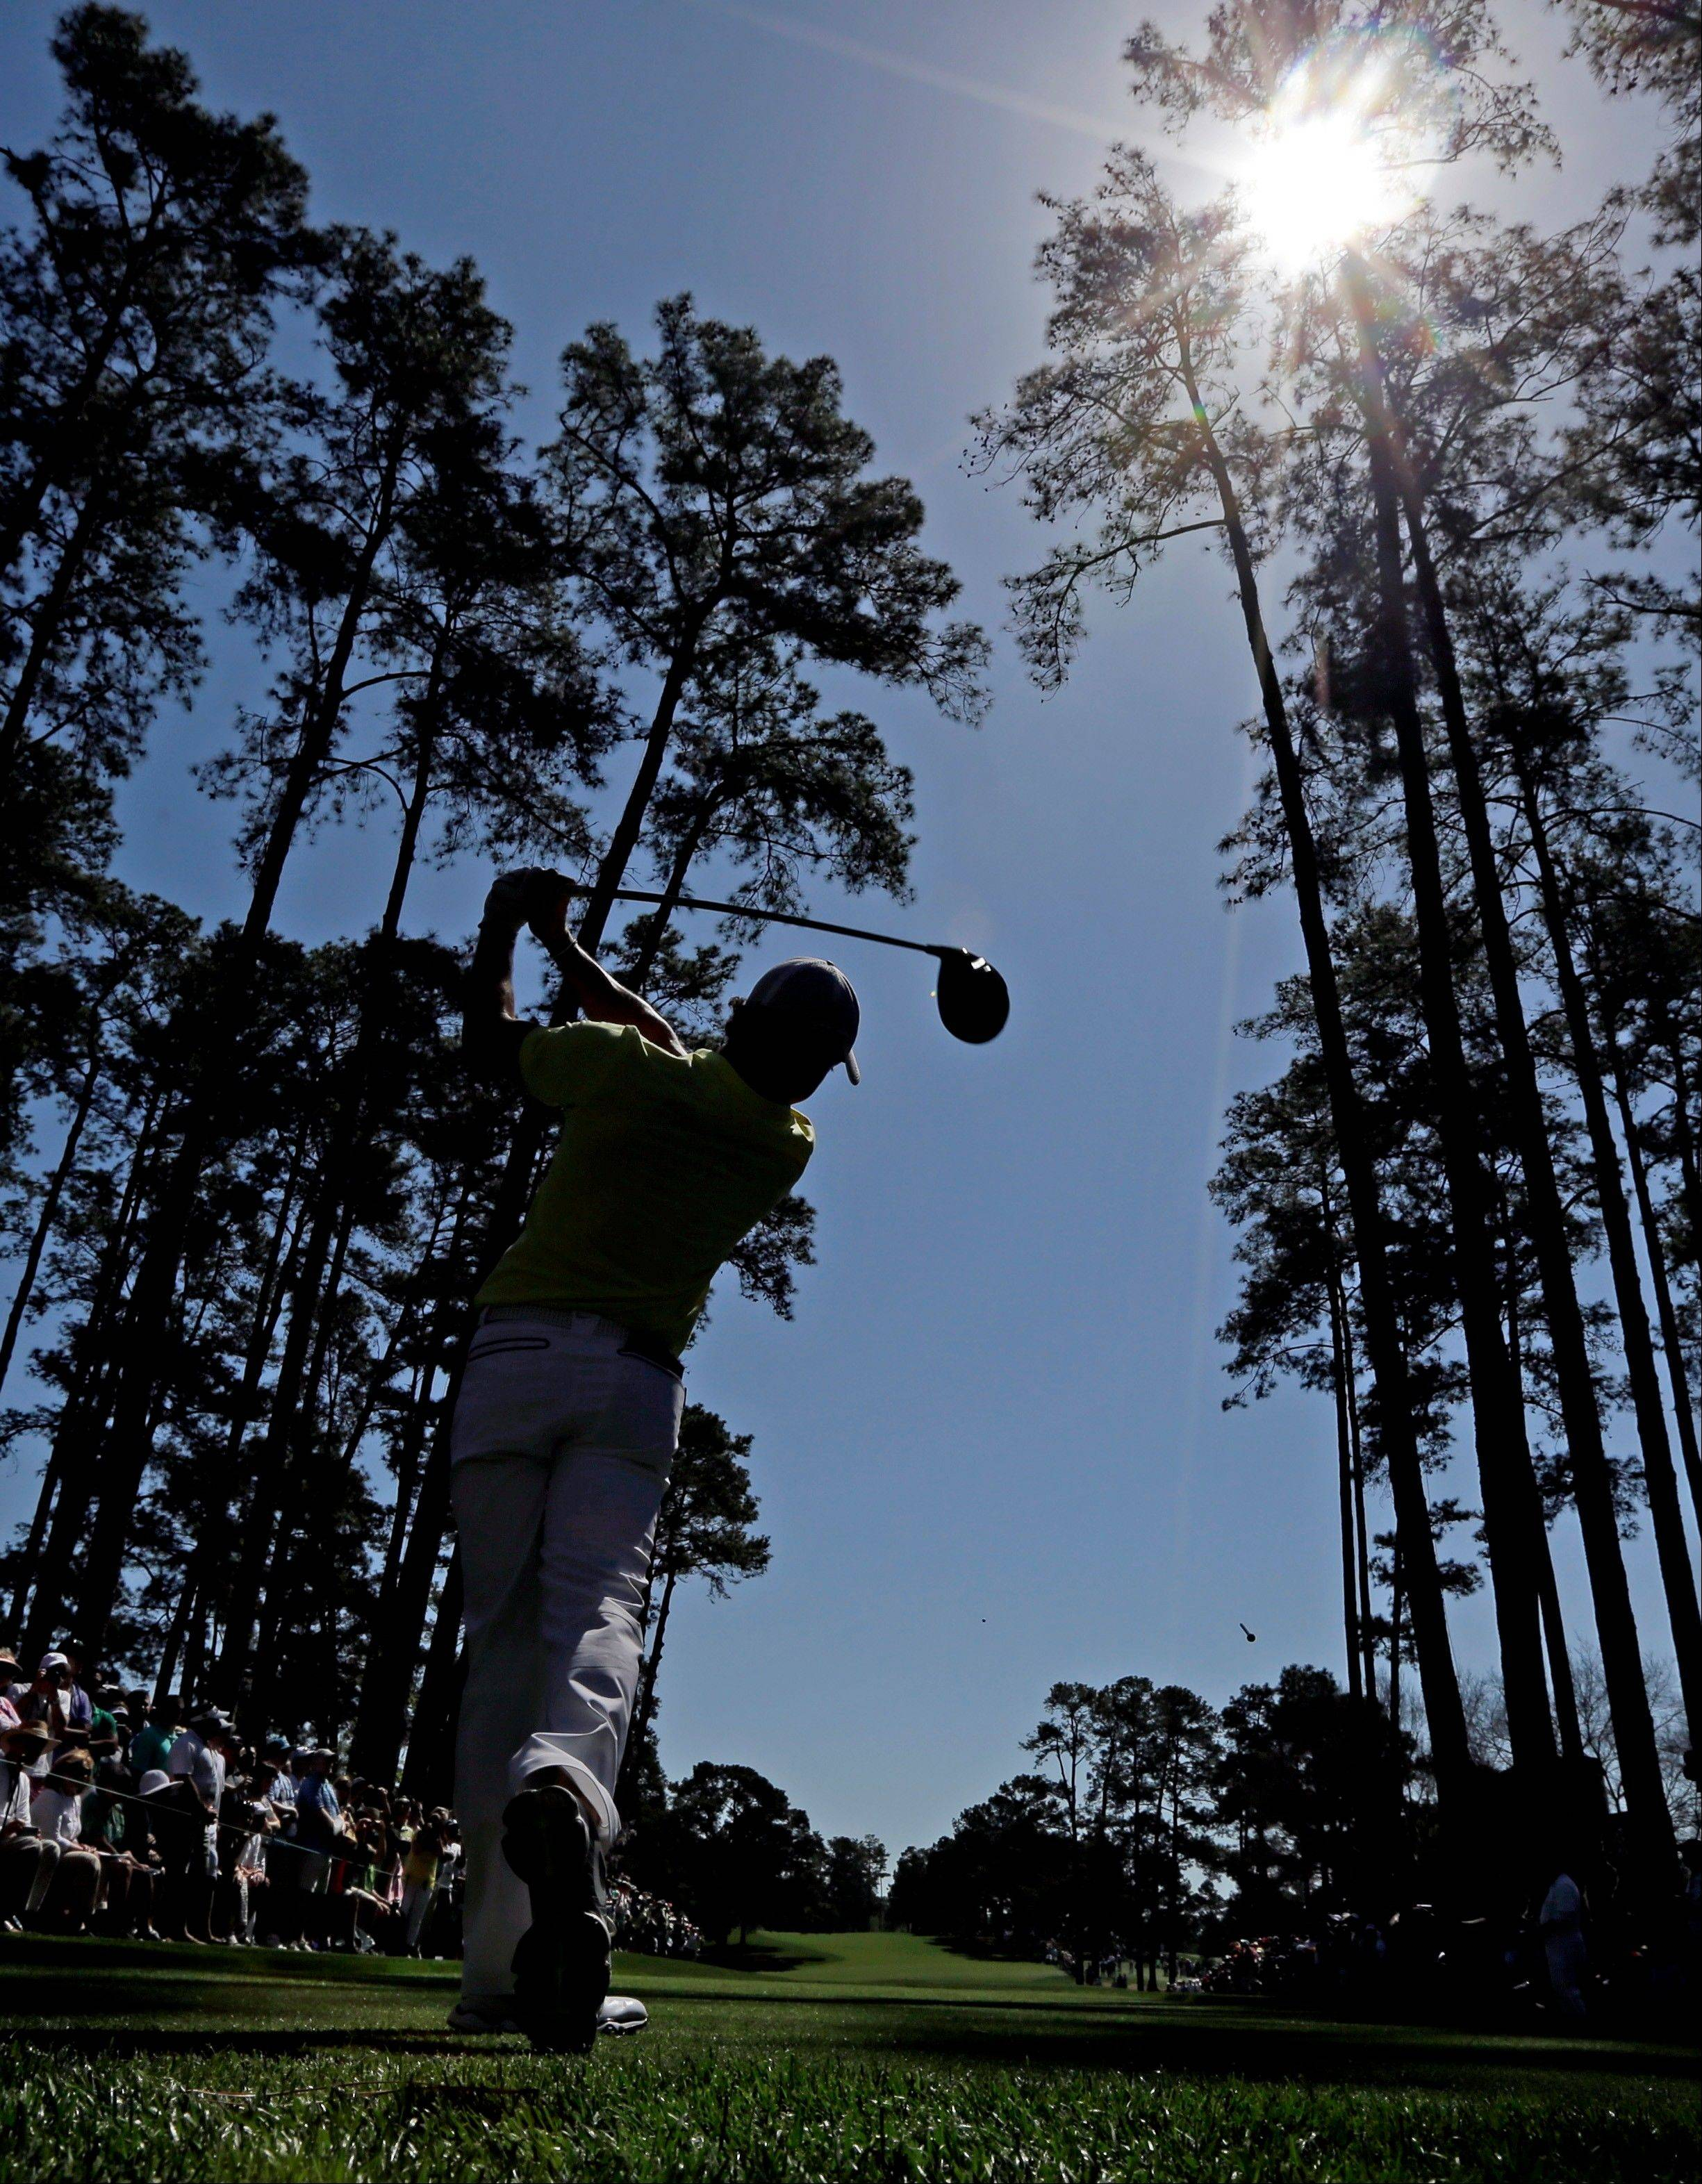 Rory McIlroy, of Northern Ireland, tees off on the 17th hole during a practice round for the Masters golf tournament Wednesday, April 10, 2013, in Augusta, Ga. (AP Photo/David J. Phillip)